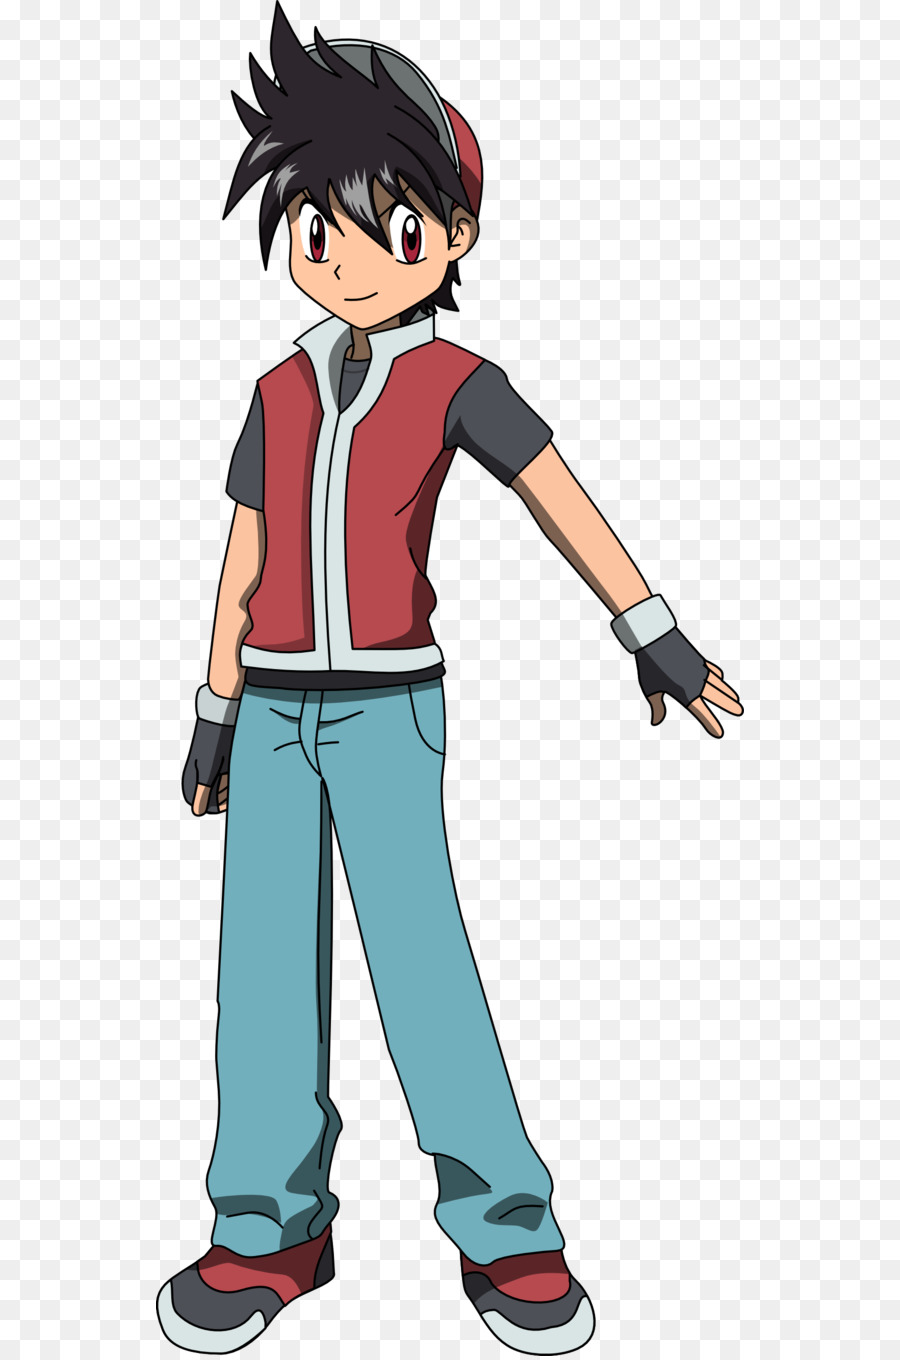 Pokemon Trainer Png (103+ images in Collection) Page 1.